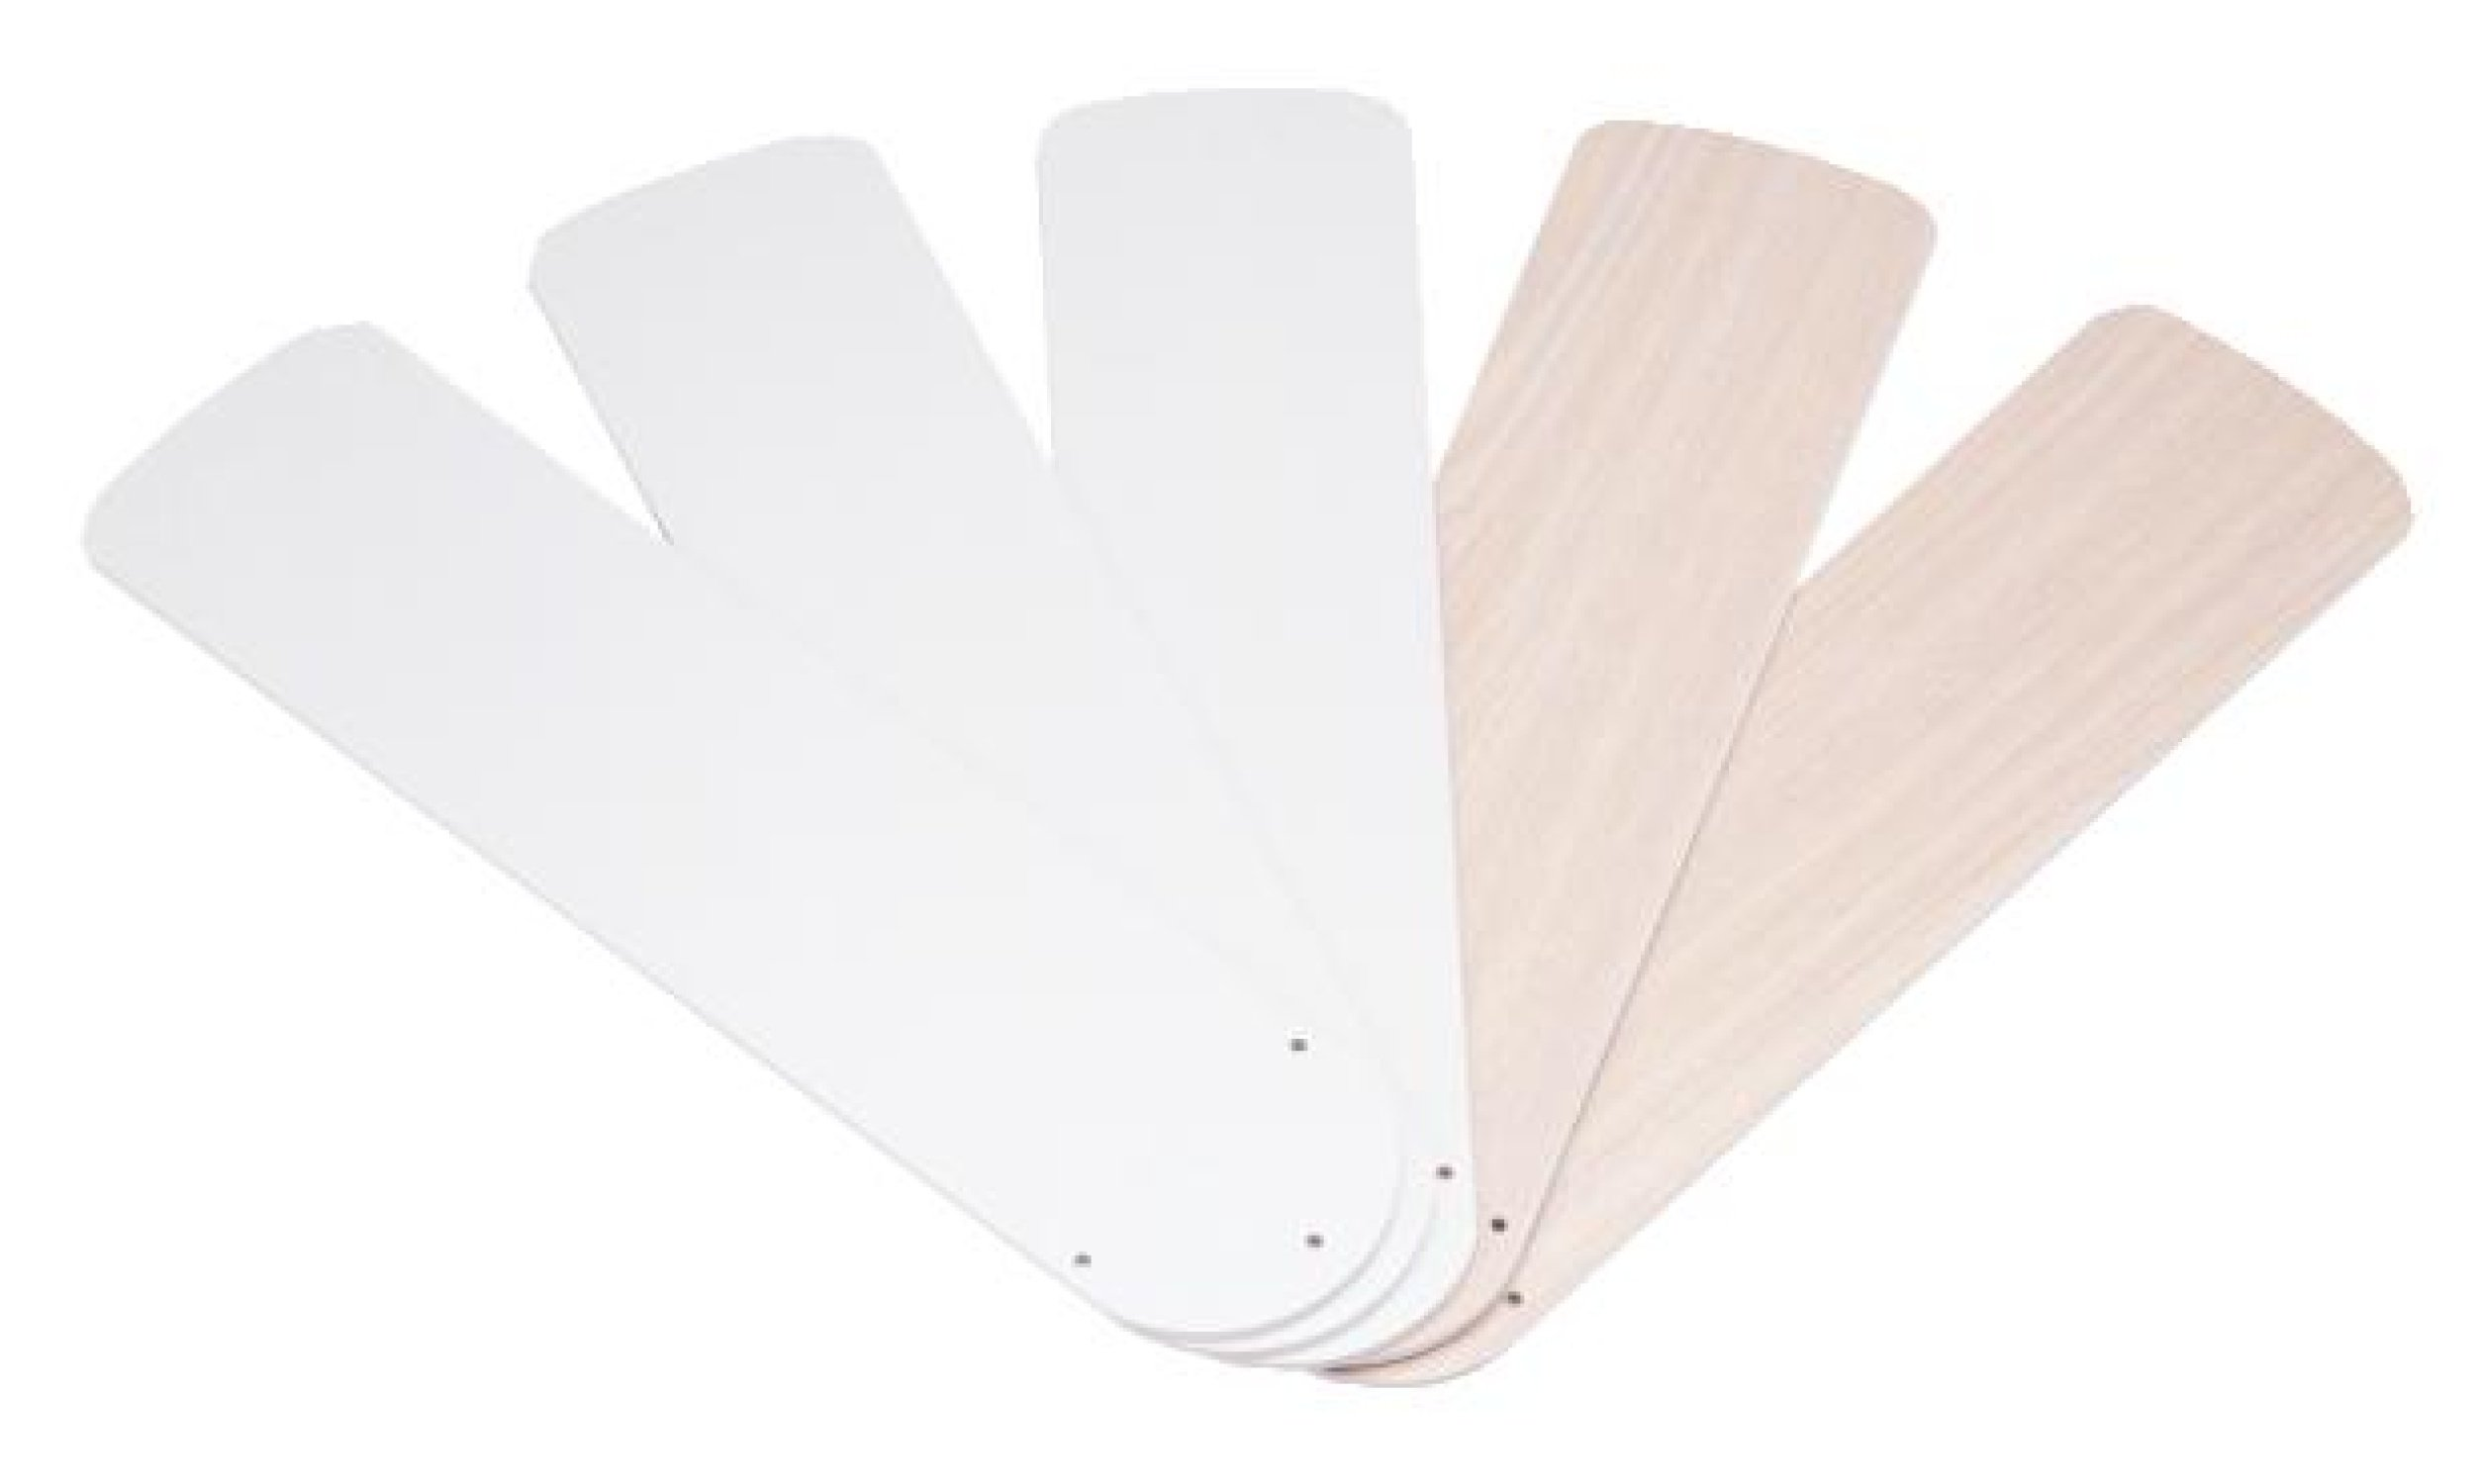 Wellington 7741100 42-Inch White/Bleached Oak Replacement Fan Blades, Five-Pack